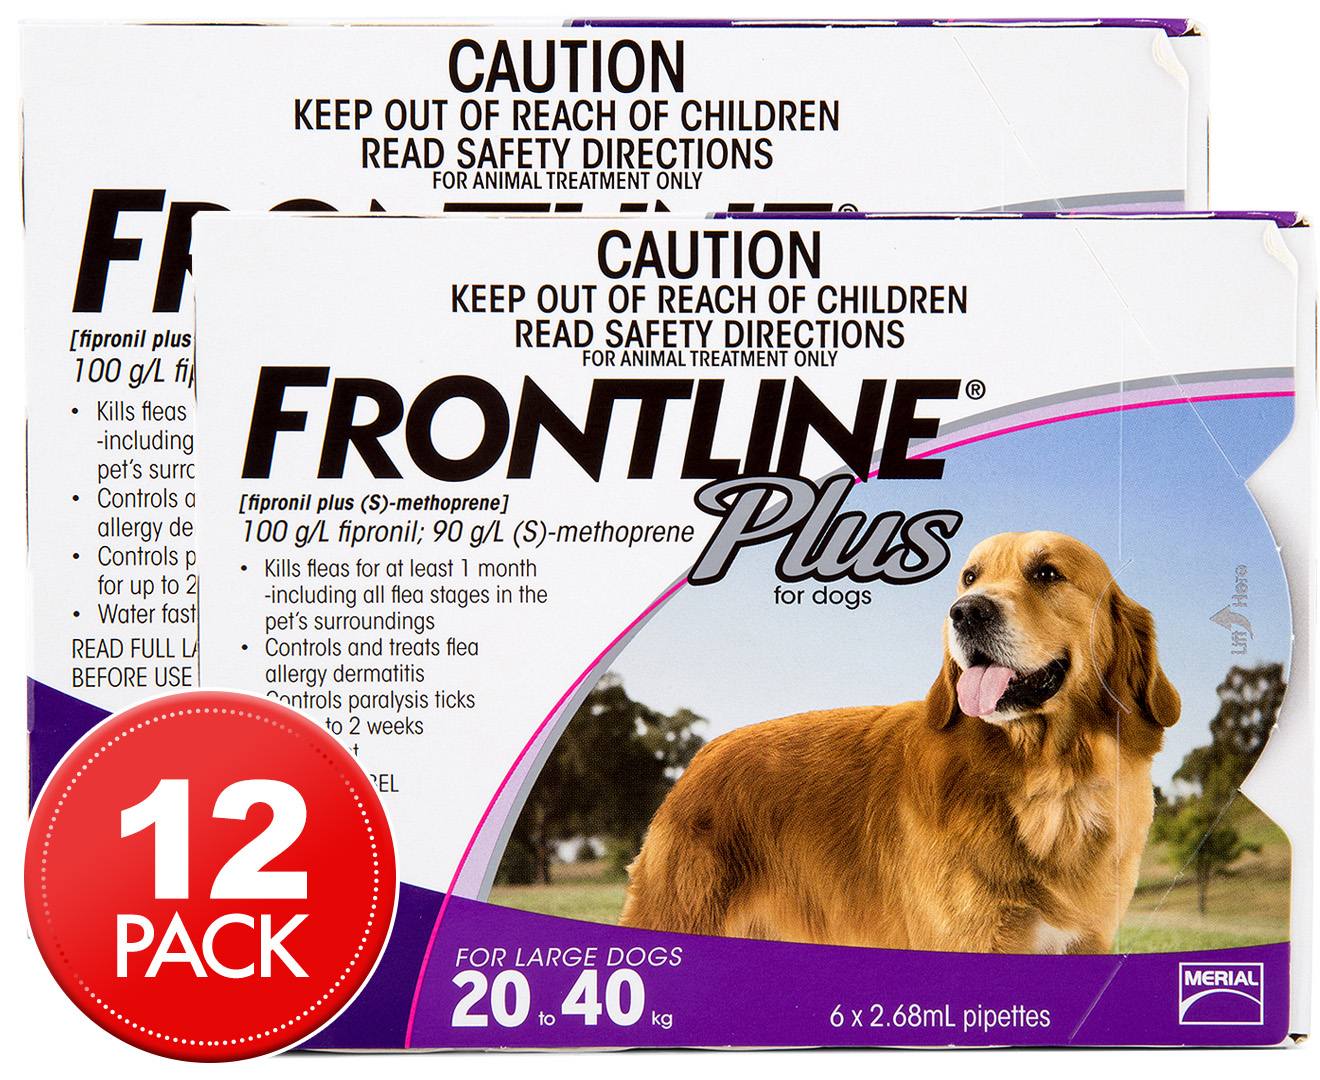 Frontline Plus Large Dogs Directions